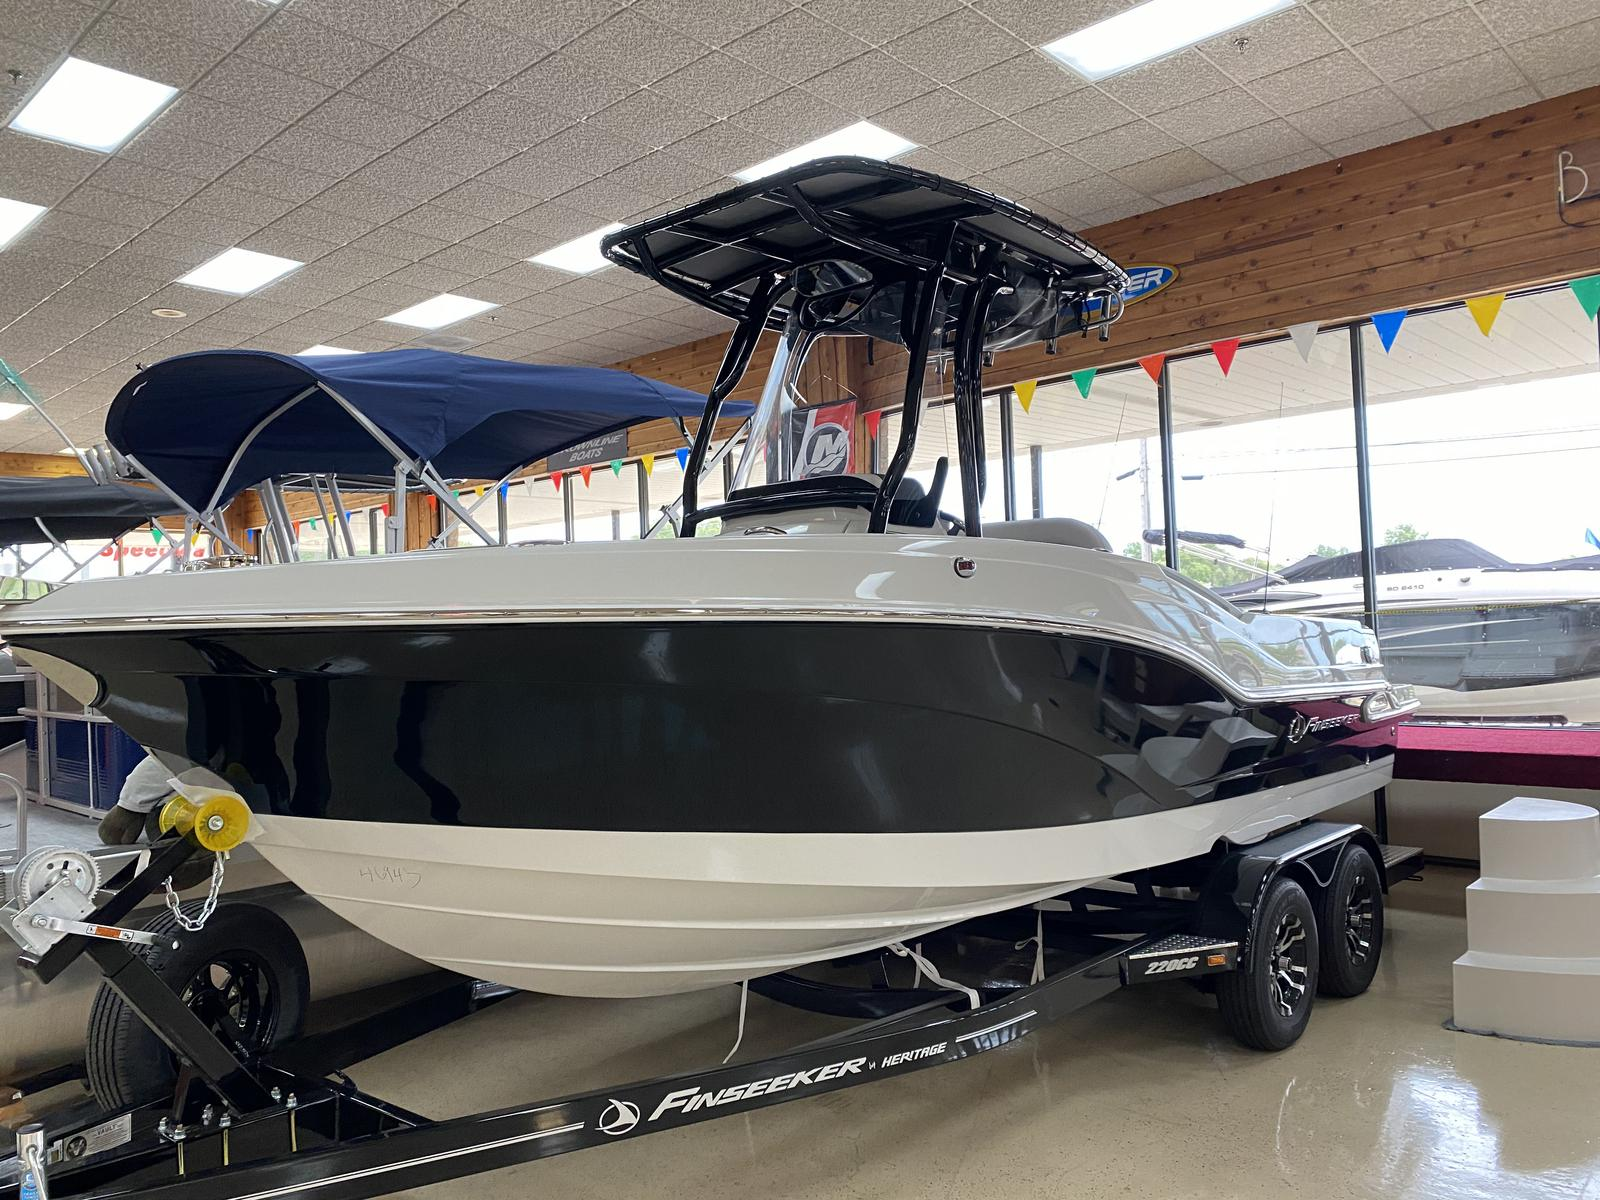 2021 Finseeker boat for sale, model of the boat is 220 Center Console & Image # 1 of 8